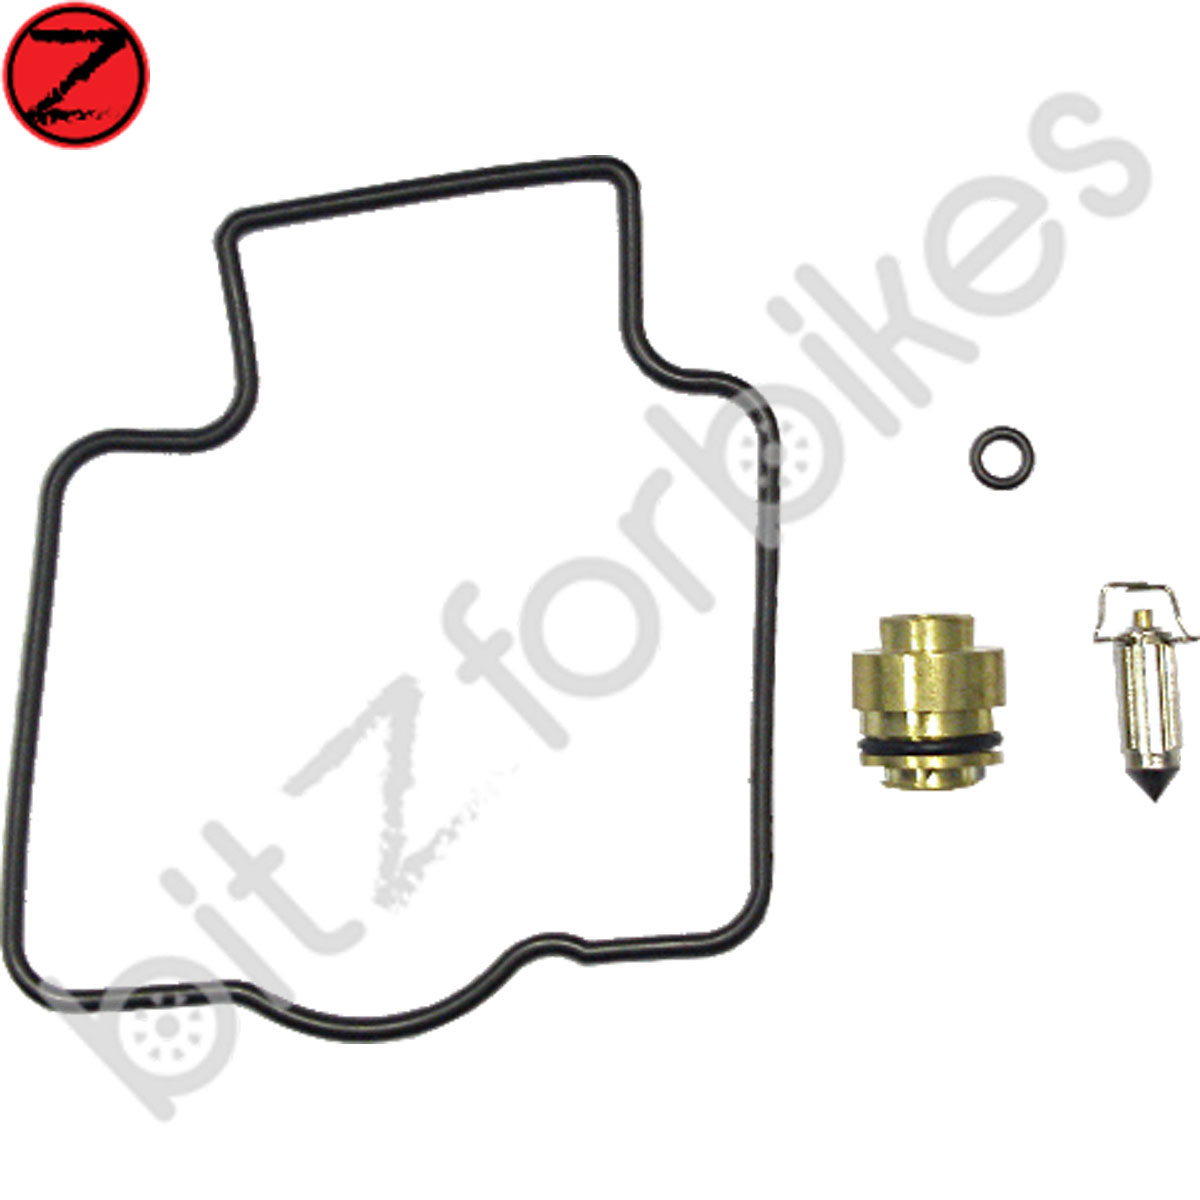 Carb Carburettor Repair Kit Kawasaki ZX10 Ninja ZX1000B1